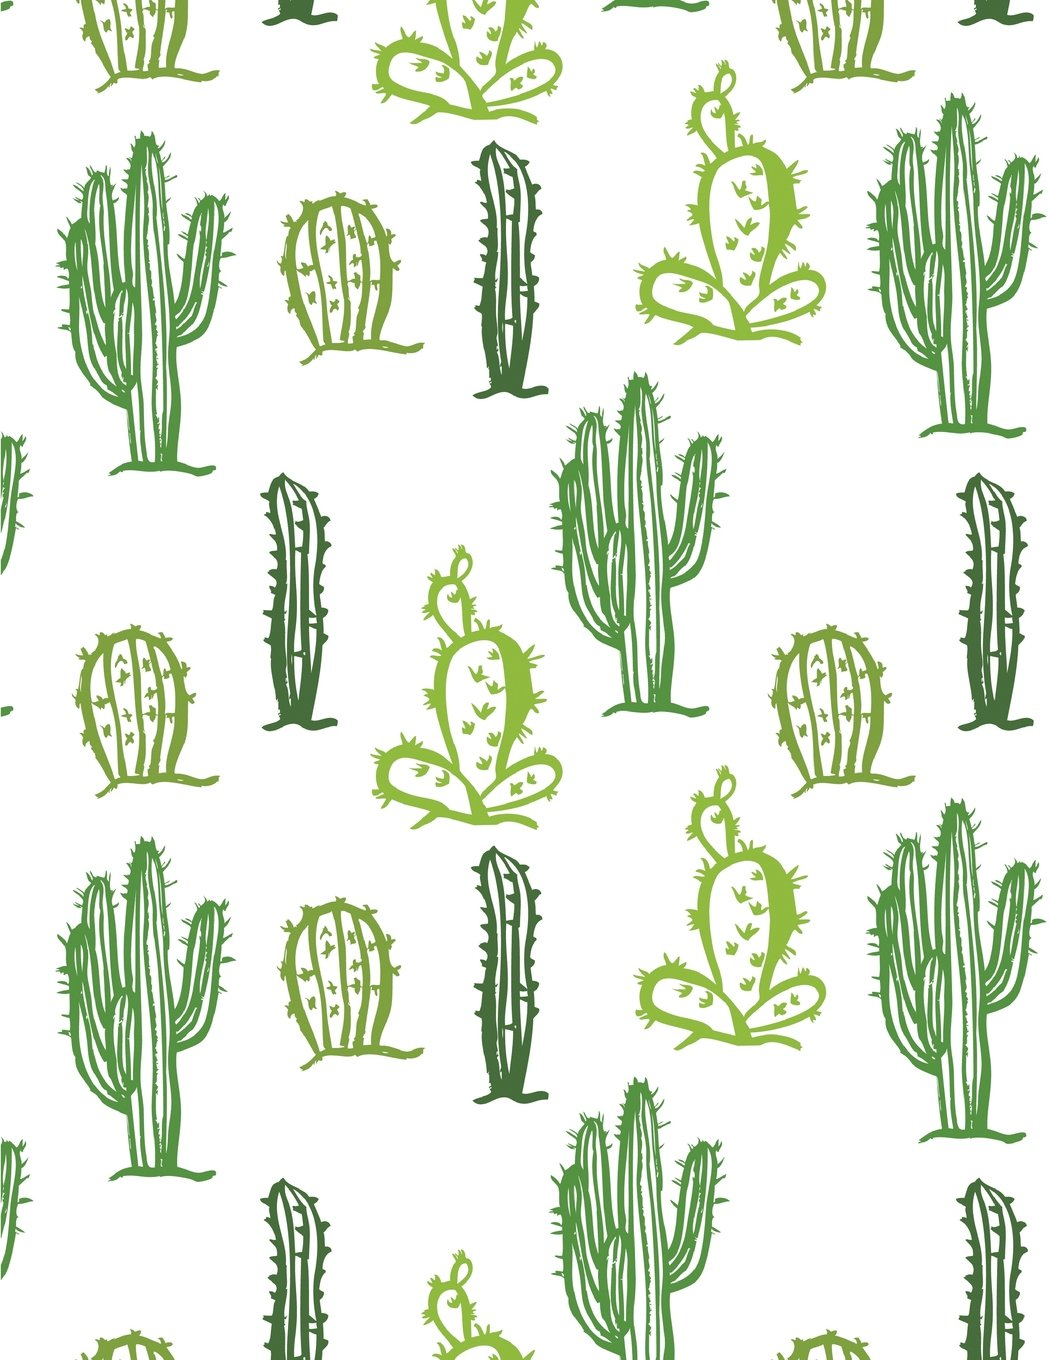 Download Cornell Notebook (Cactus): Cornell Note Template With Grid Paper 8.5x11 Inches, 121 pages For Taking Notes Cactus Paperback University Classroom Large ... Ruled Notebooks and Grid Journals) (Volume 2) pdf